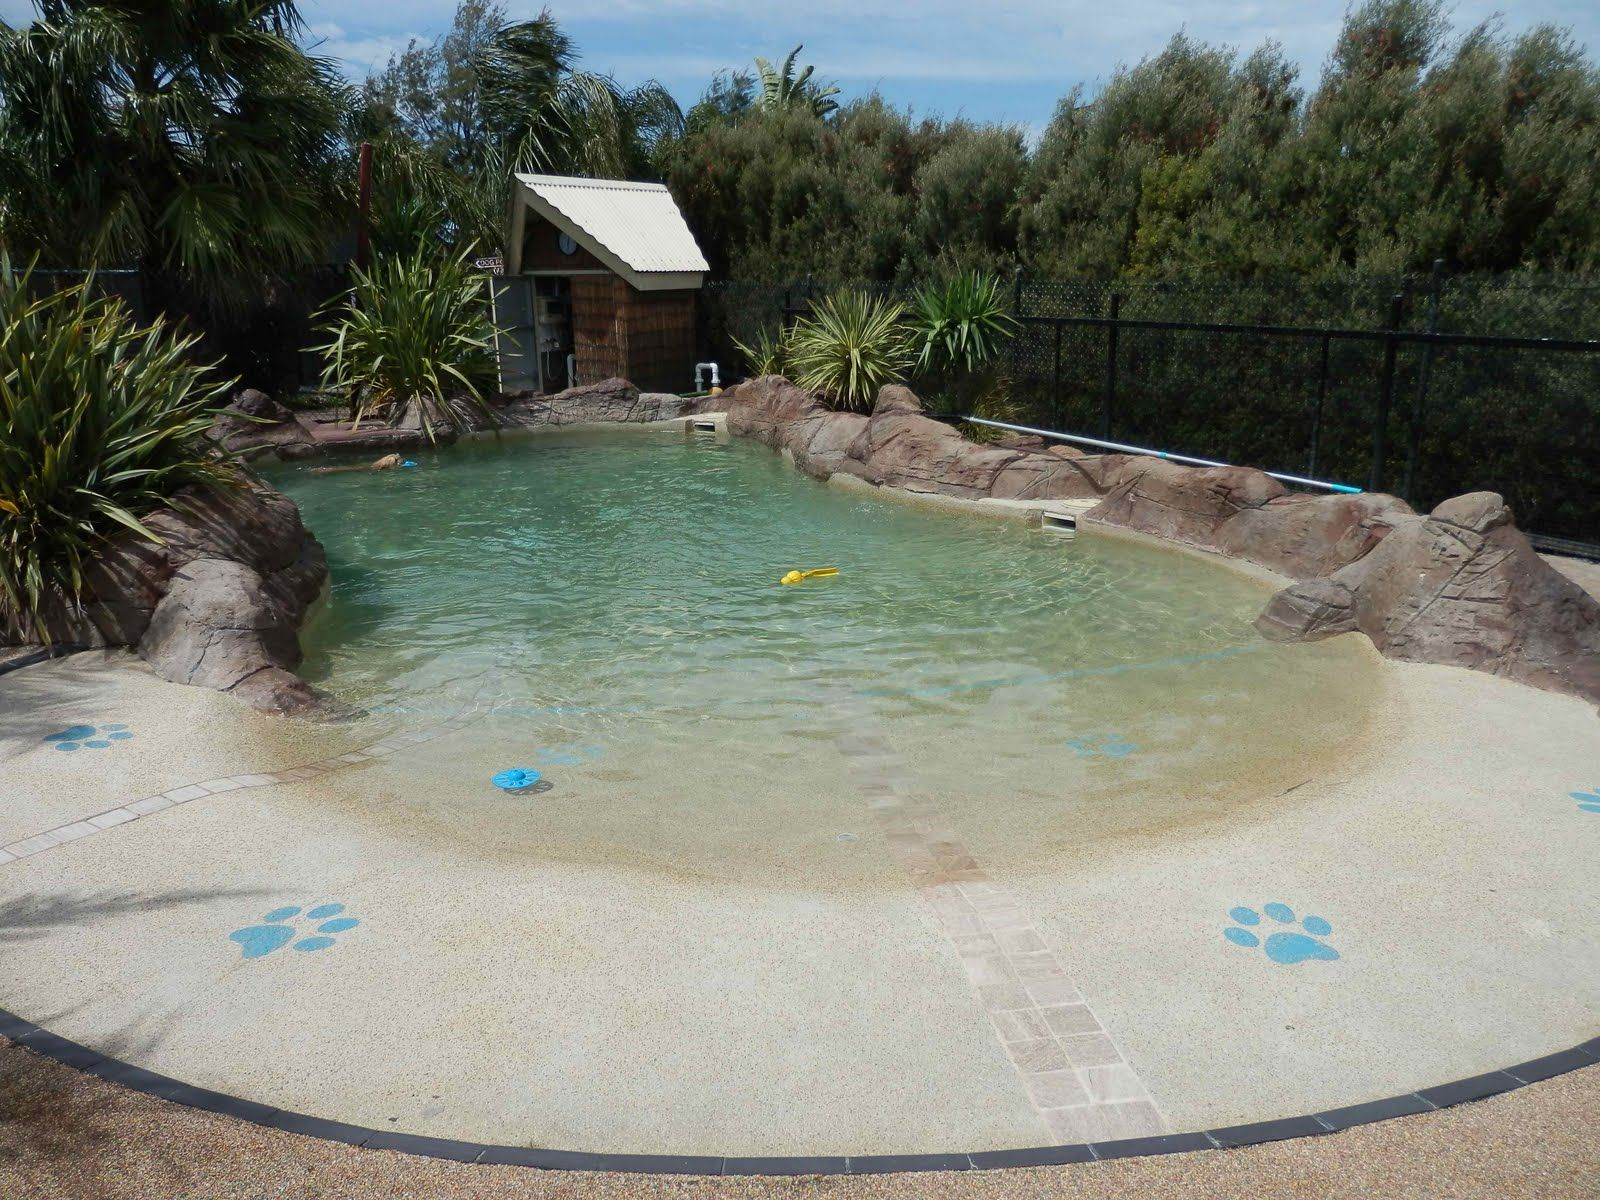 Best Dog Swimming Pools Ideas On Pinterest Balcony For Dogs - Purpose built canine pool every dogs dream